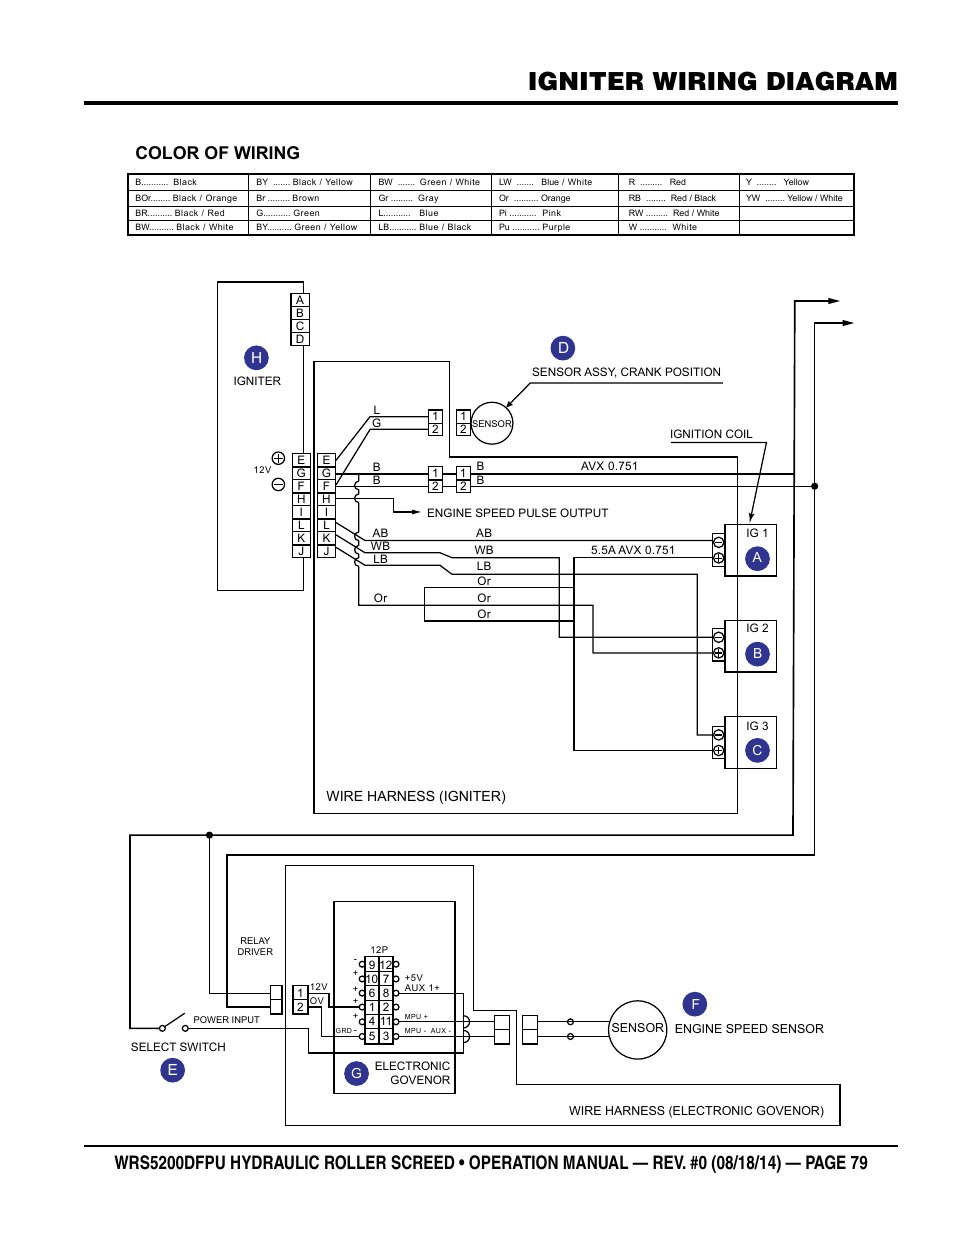 Igniter wiring diagram color of hd e multiquip